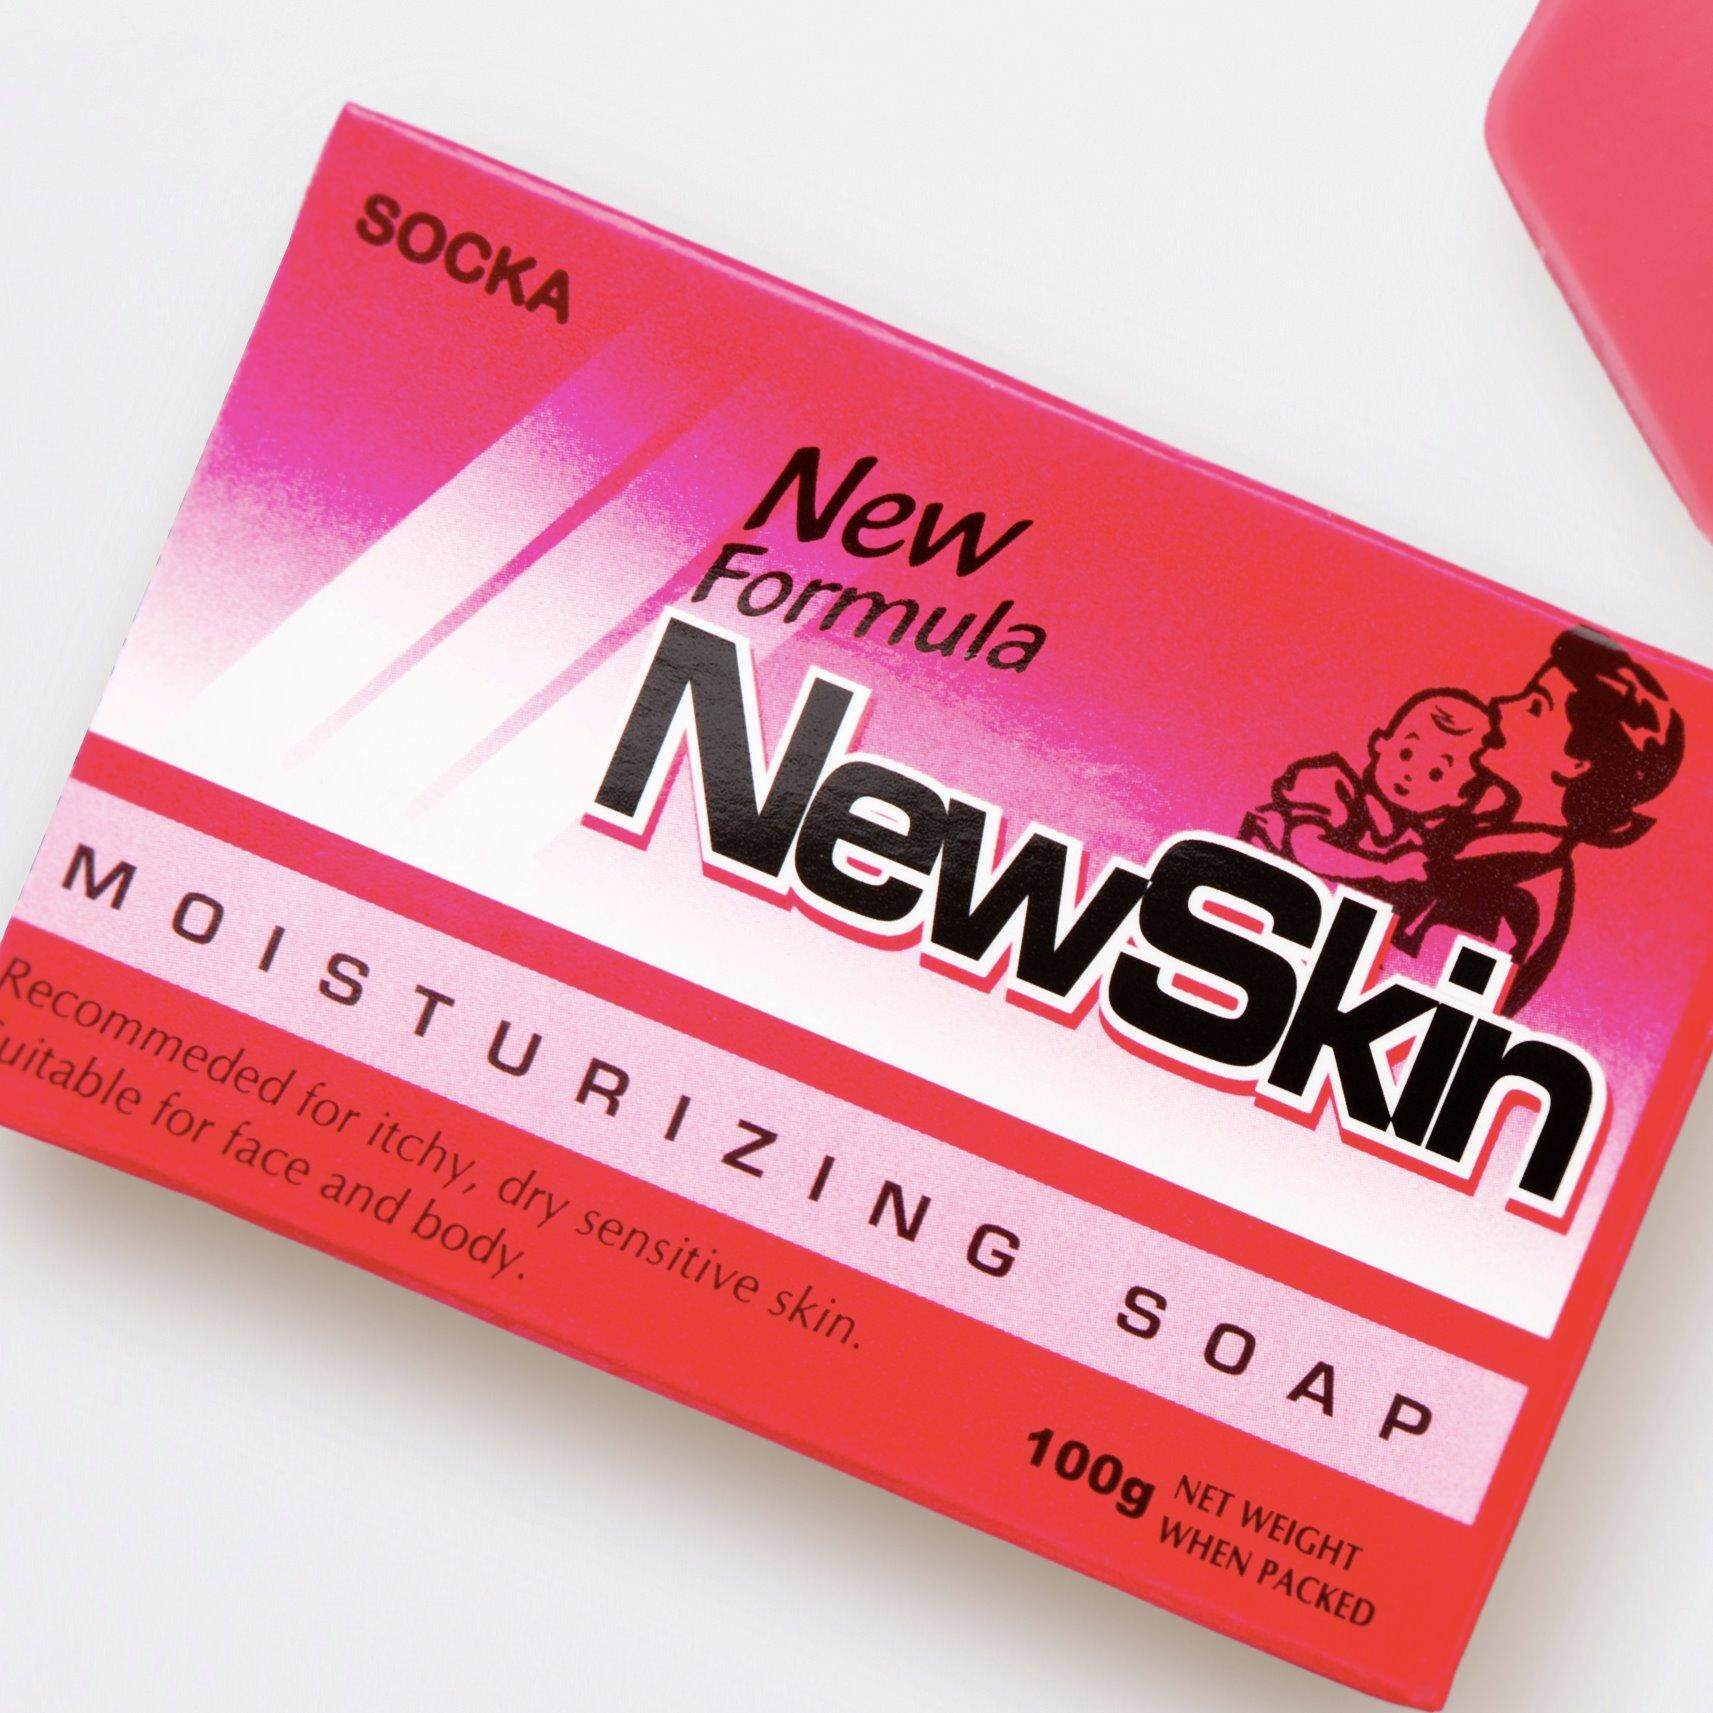 Sell Oilakleen Moisturizing Soap Cheapest Best Quality My Store Buy 9 Get 1 Free Oilum Hydrating Care Cleansing Bar Myr 12